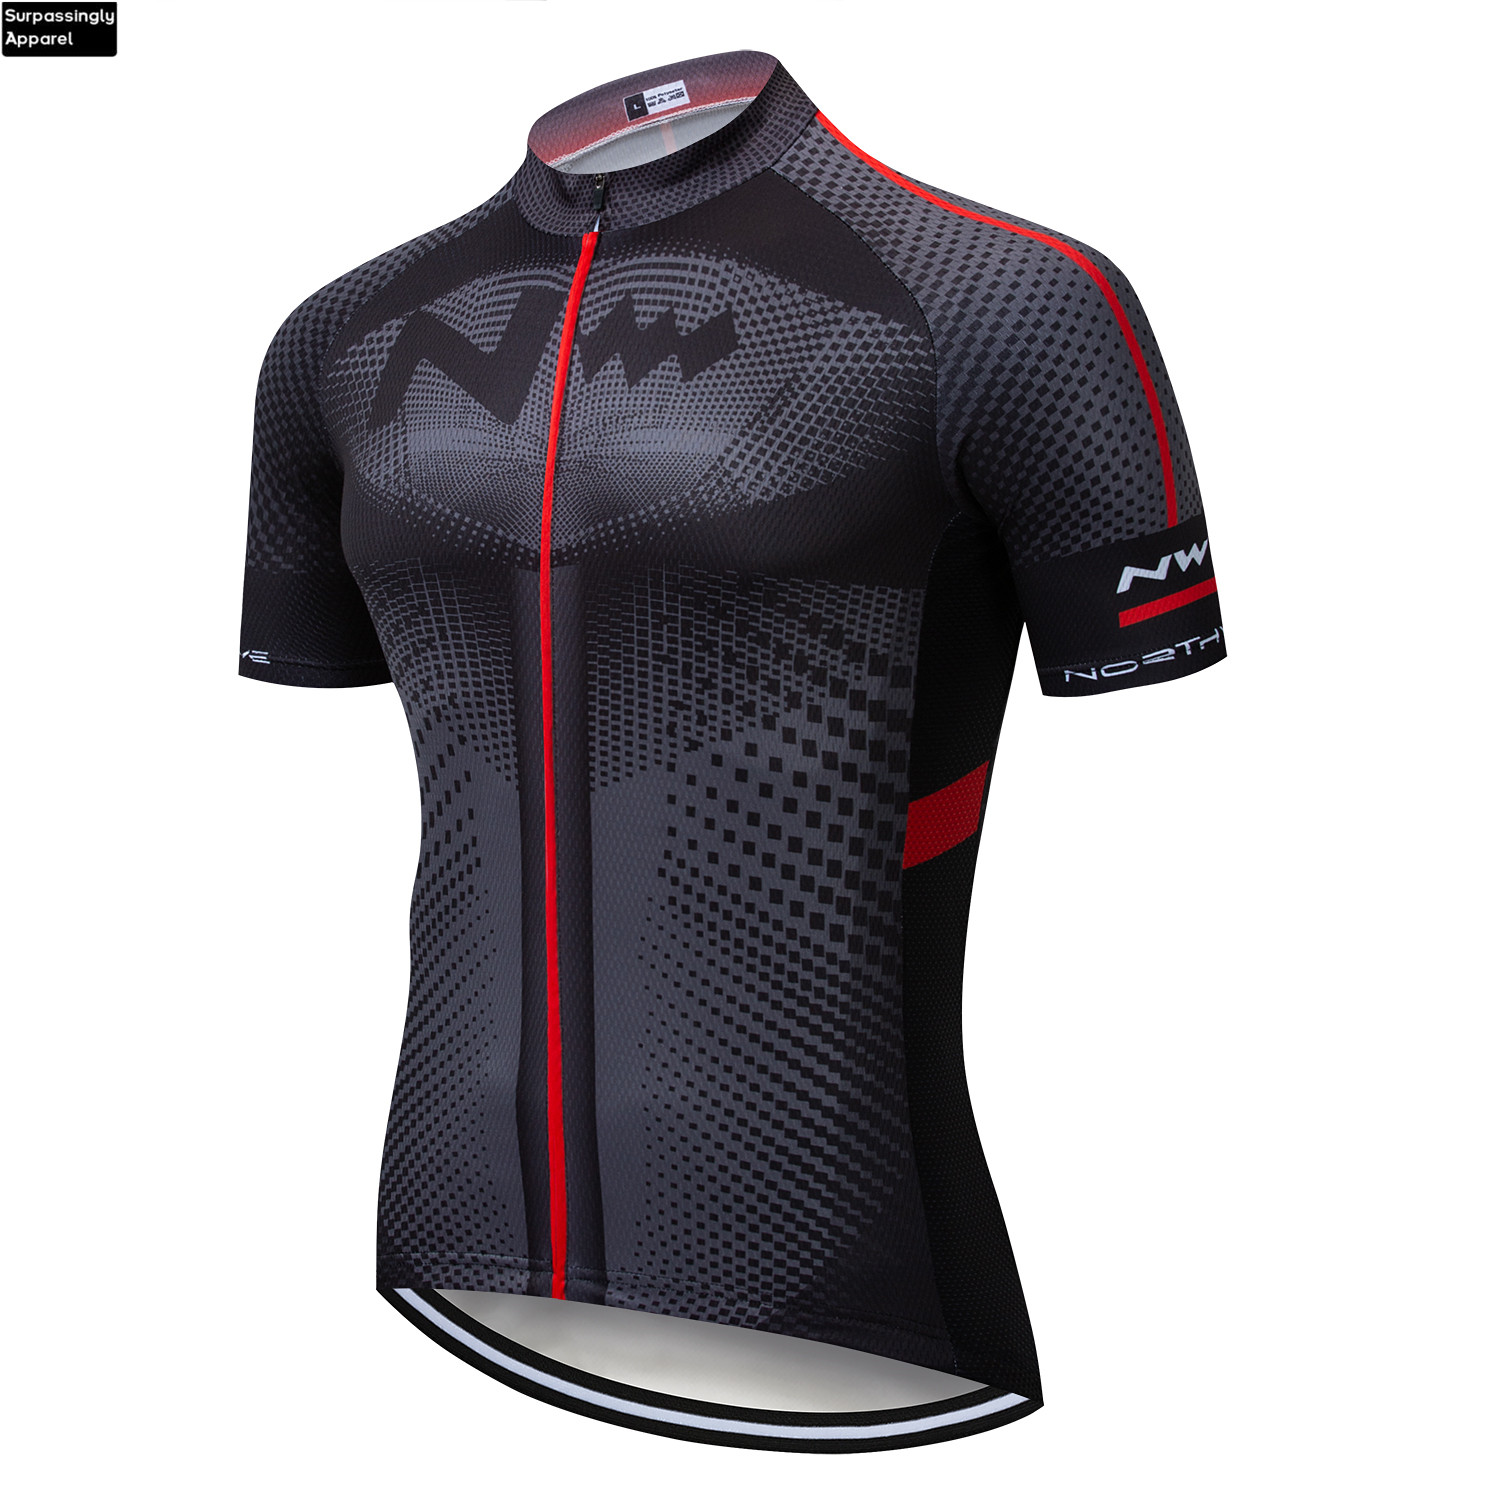 2019 Pro UCI Teams NW <font><b>Custom</b></font> Cycling <font><b>Jersey</b></font> Bicycle Short Sleeve Shirts Summer Mountain <font><b>Bike</b></font> Bicycle Clothing MTB Maillot image